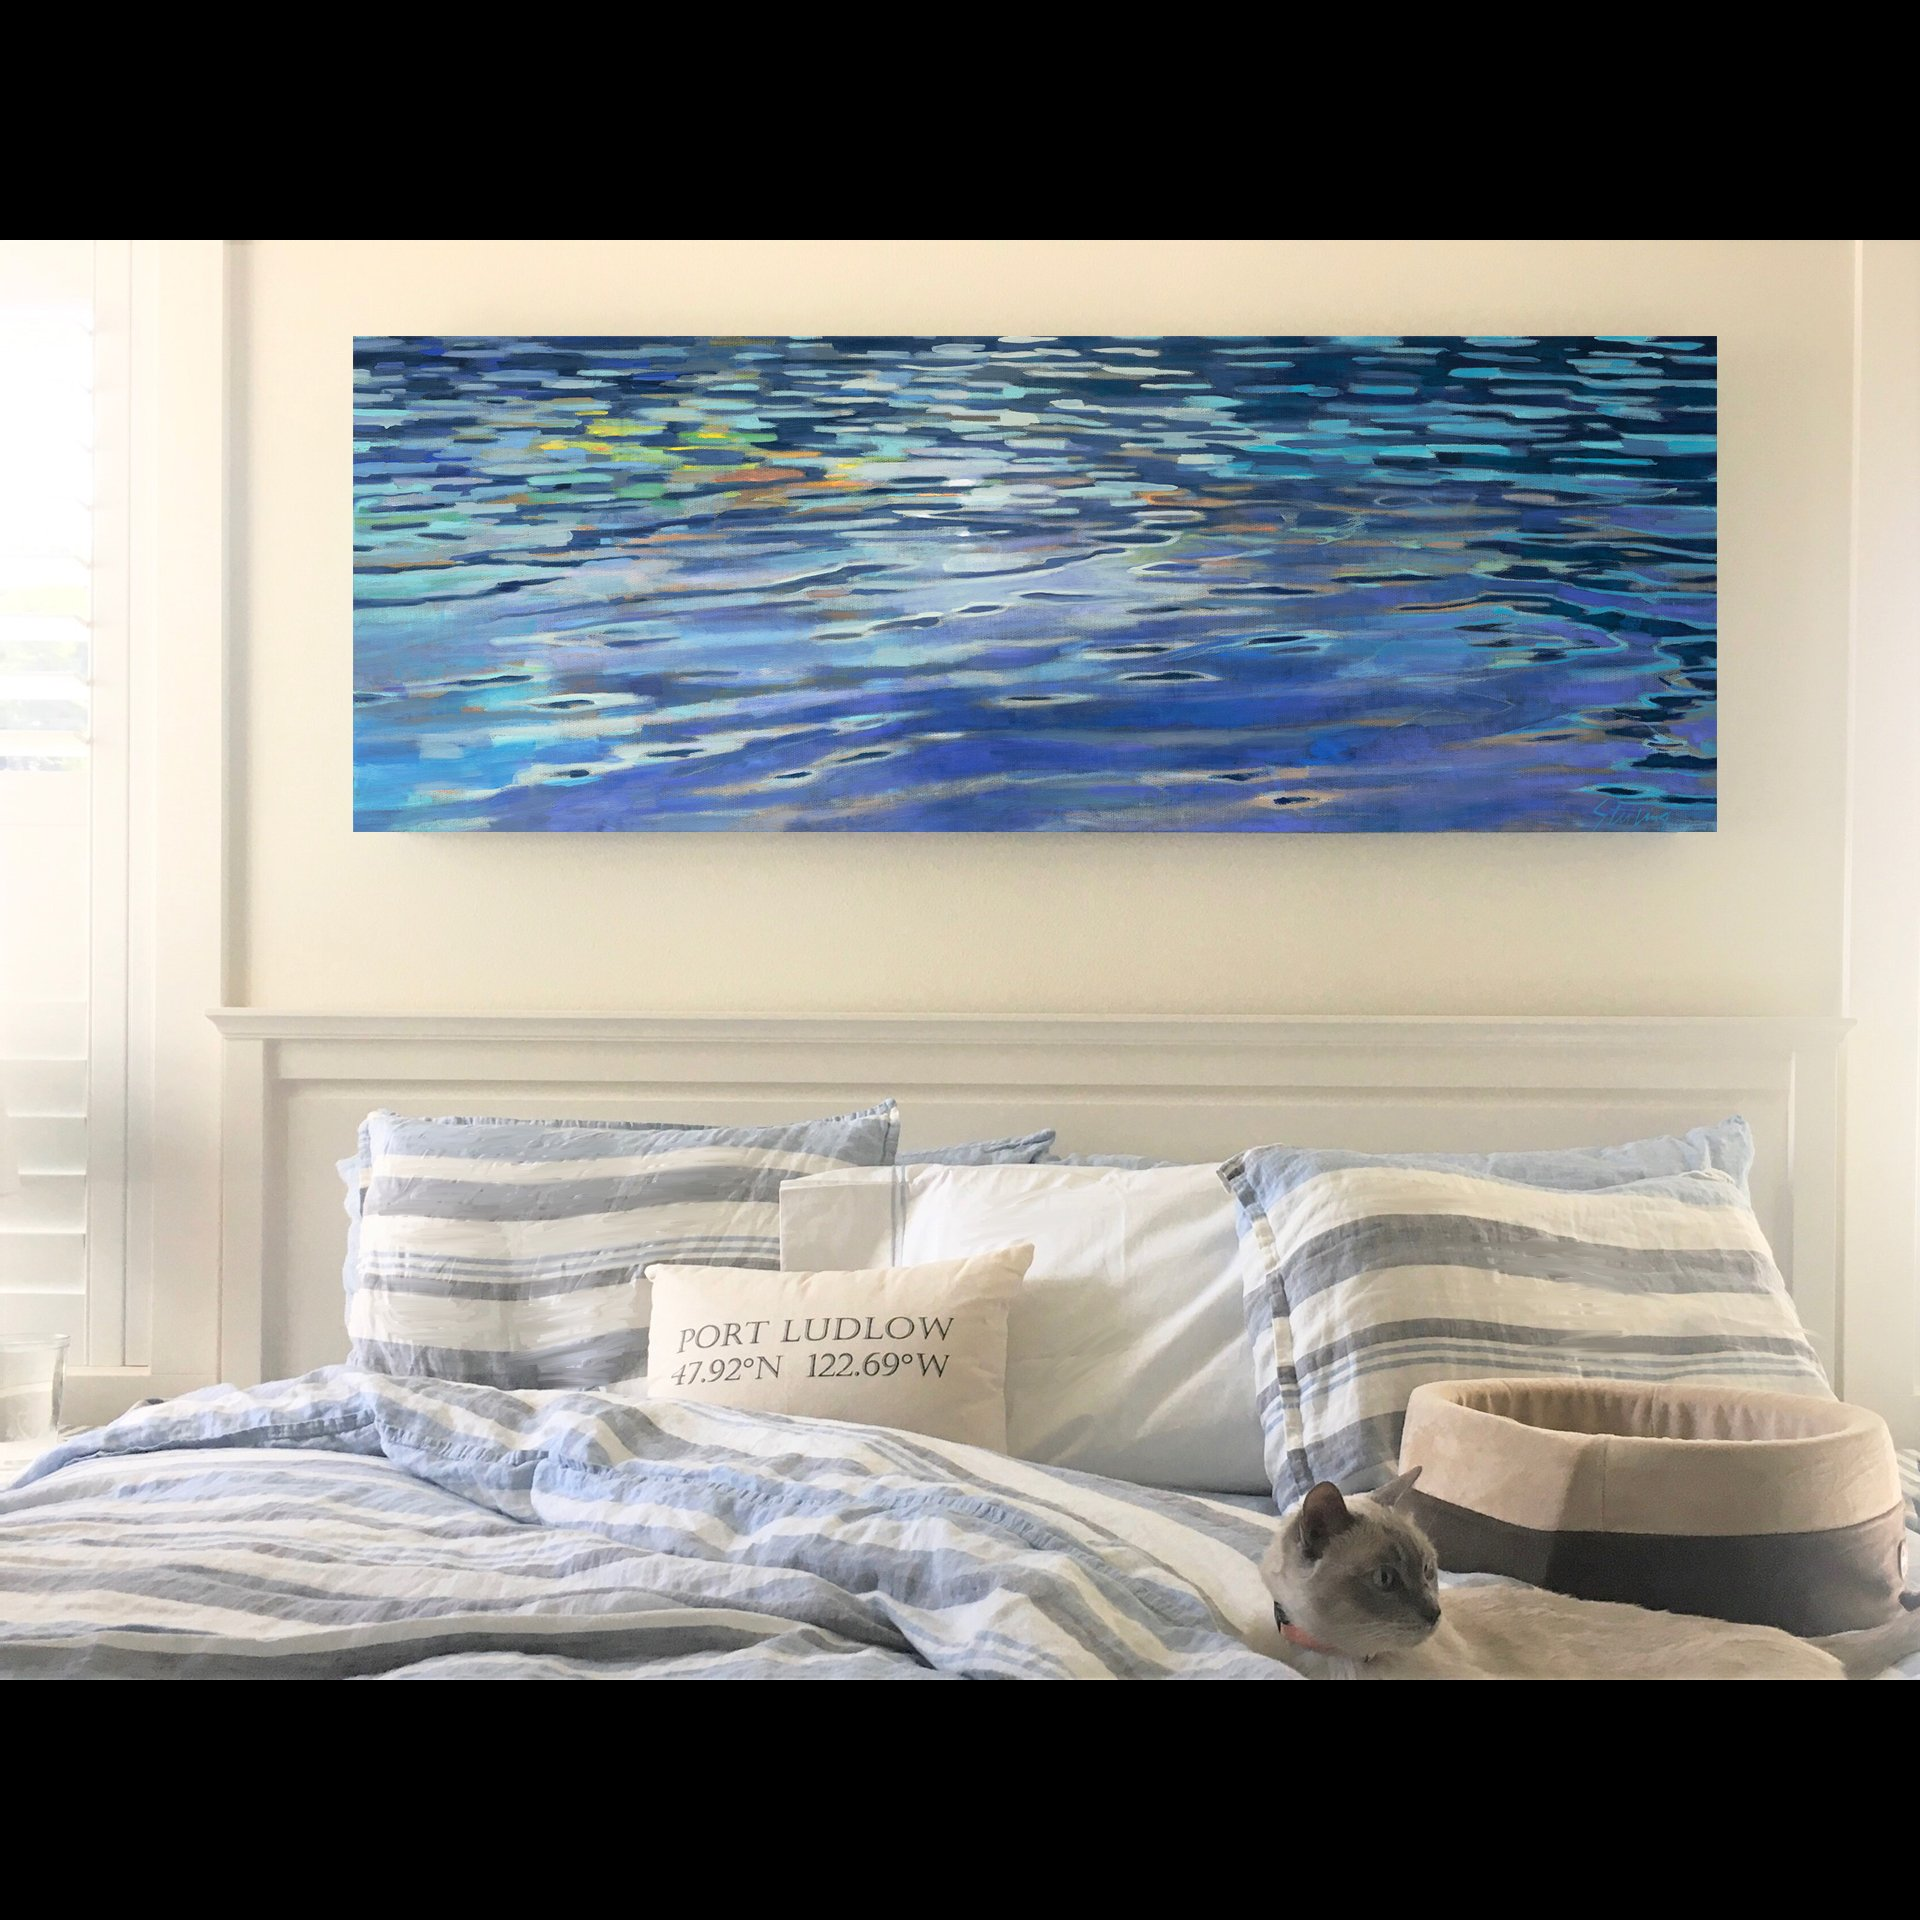 MOONLIGHT SWIM #2 24x72 giclee on canvas $900